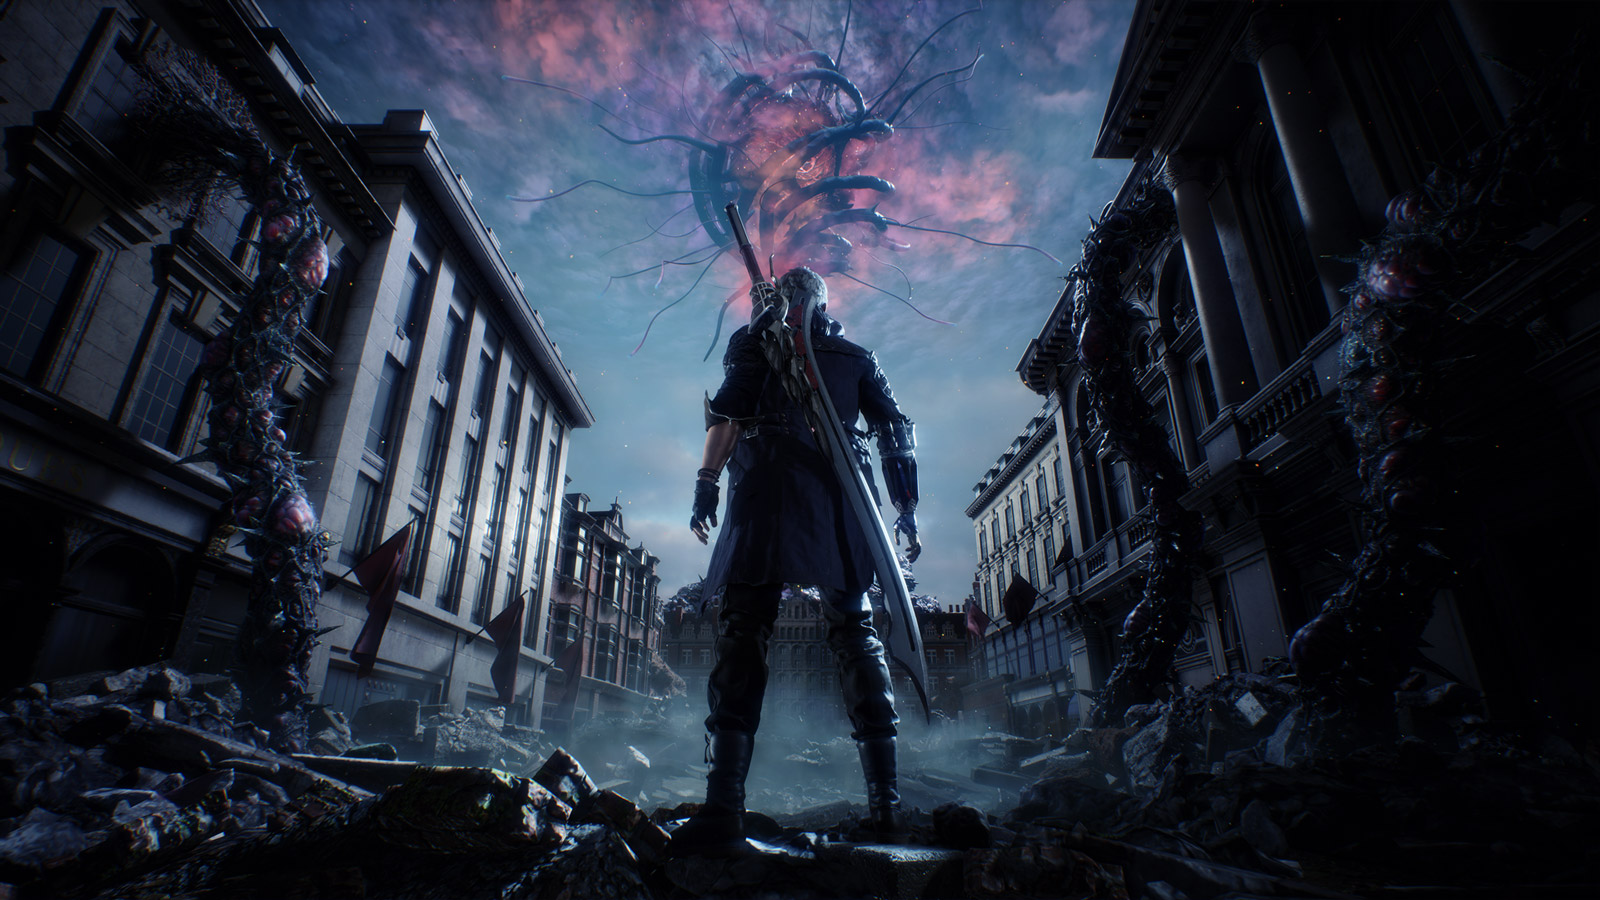 Free Devil May Cry 5 Wallpaper in 1600x900